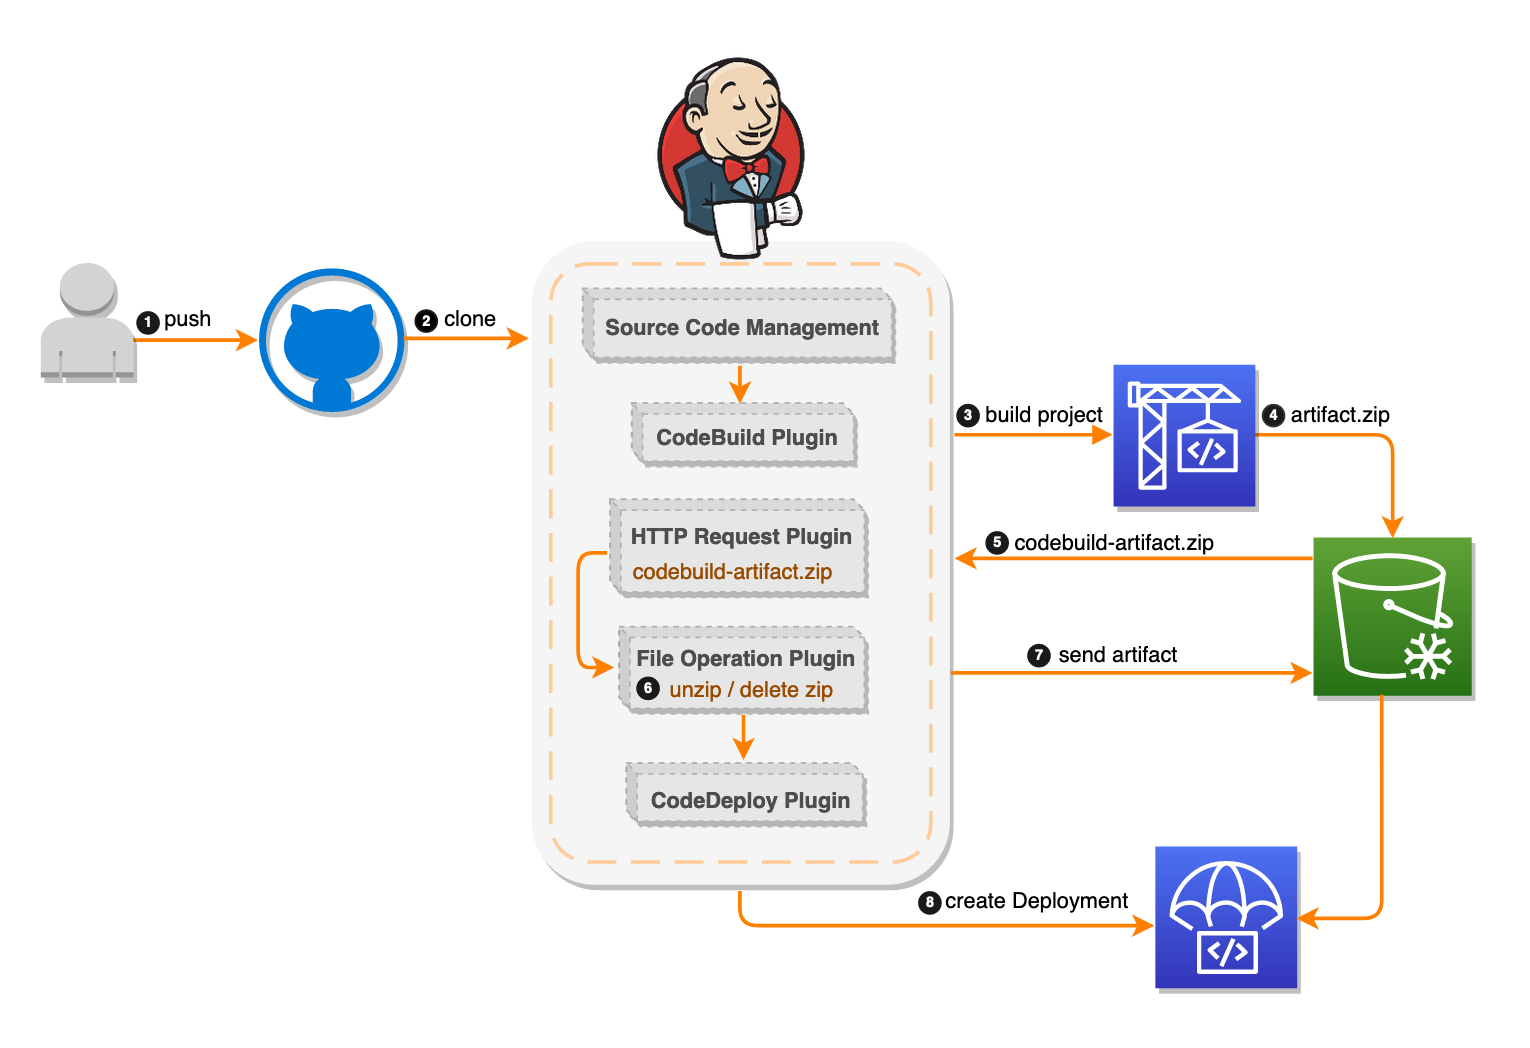 Setting up a CI/CD pipeline by integrating Jenkins with AWS